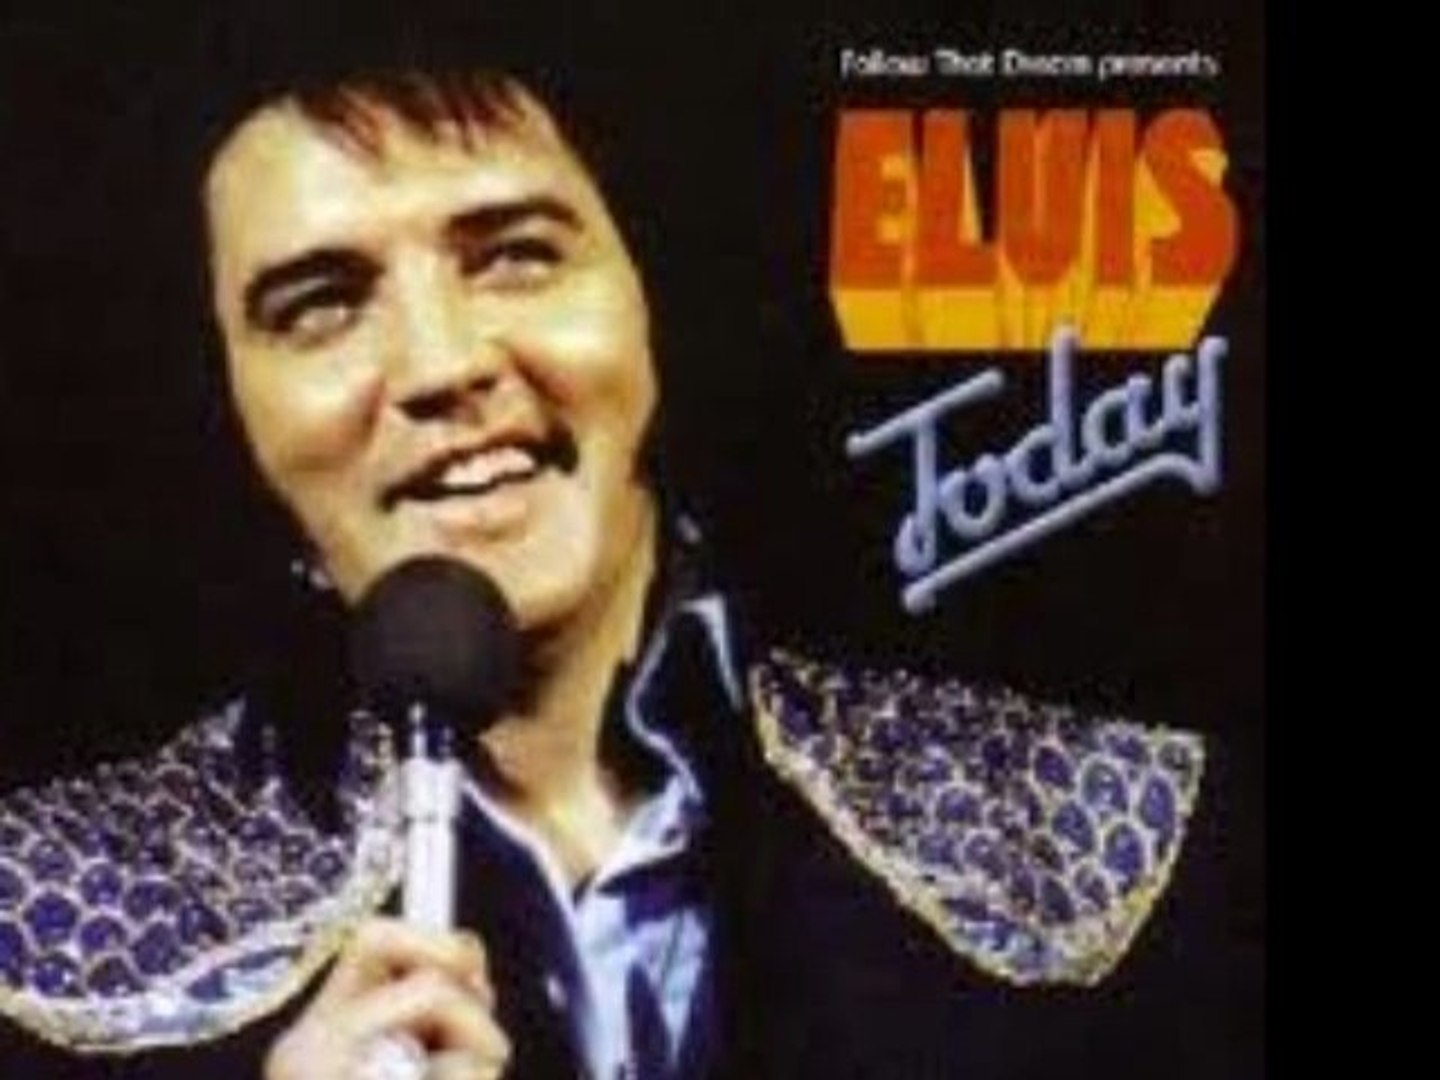 And I Love You So (Elvis Presley, sung by Panceitor)